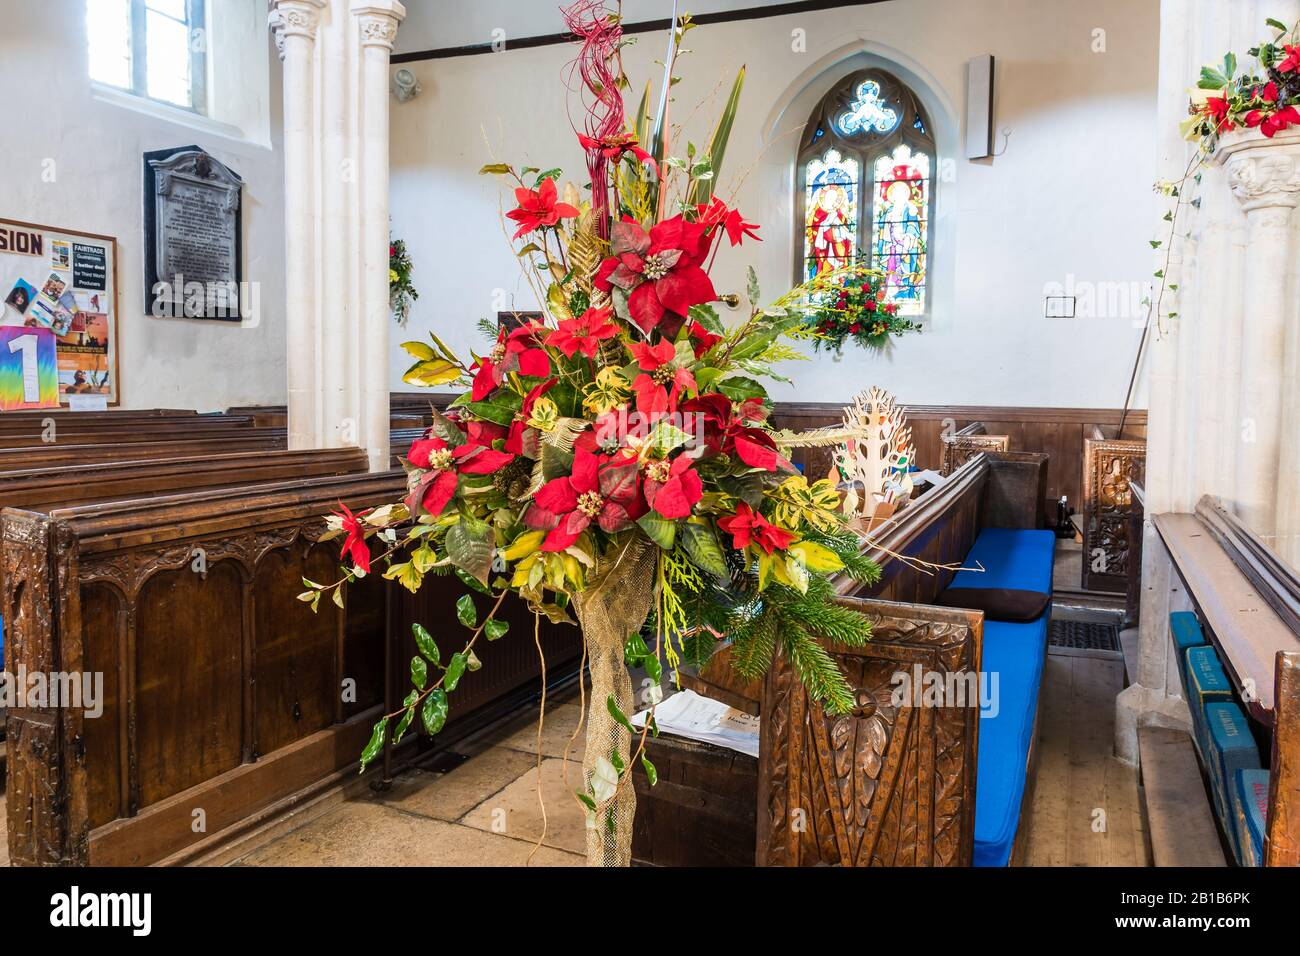 Christmas Church Flowers High Resolution Stock Photography And Images Alamy